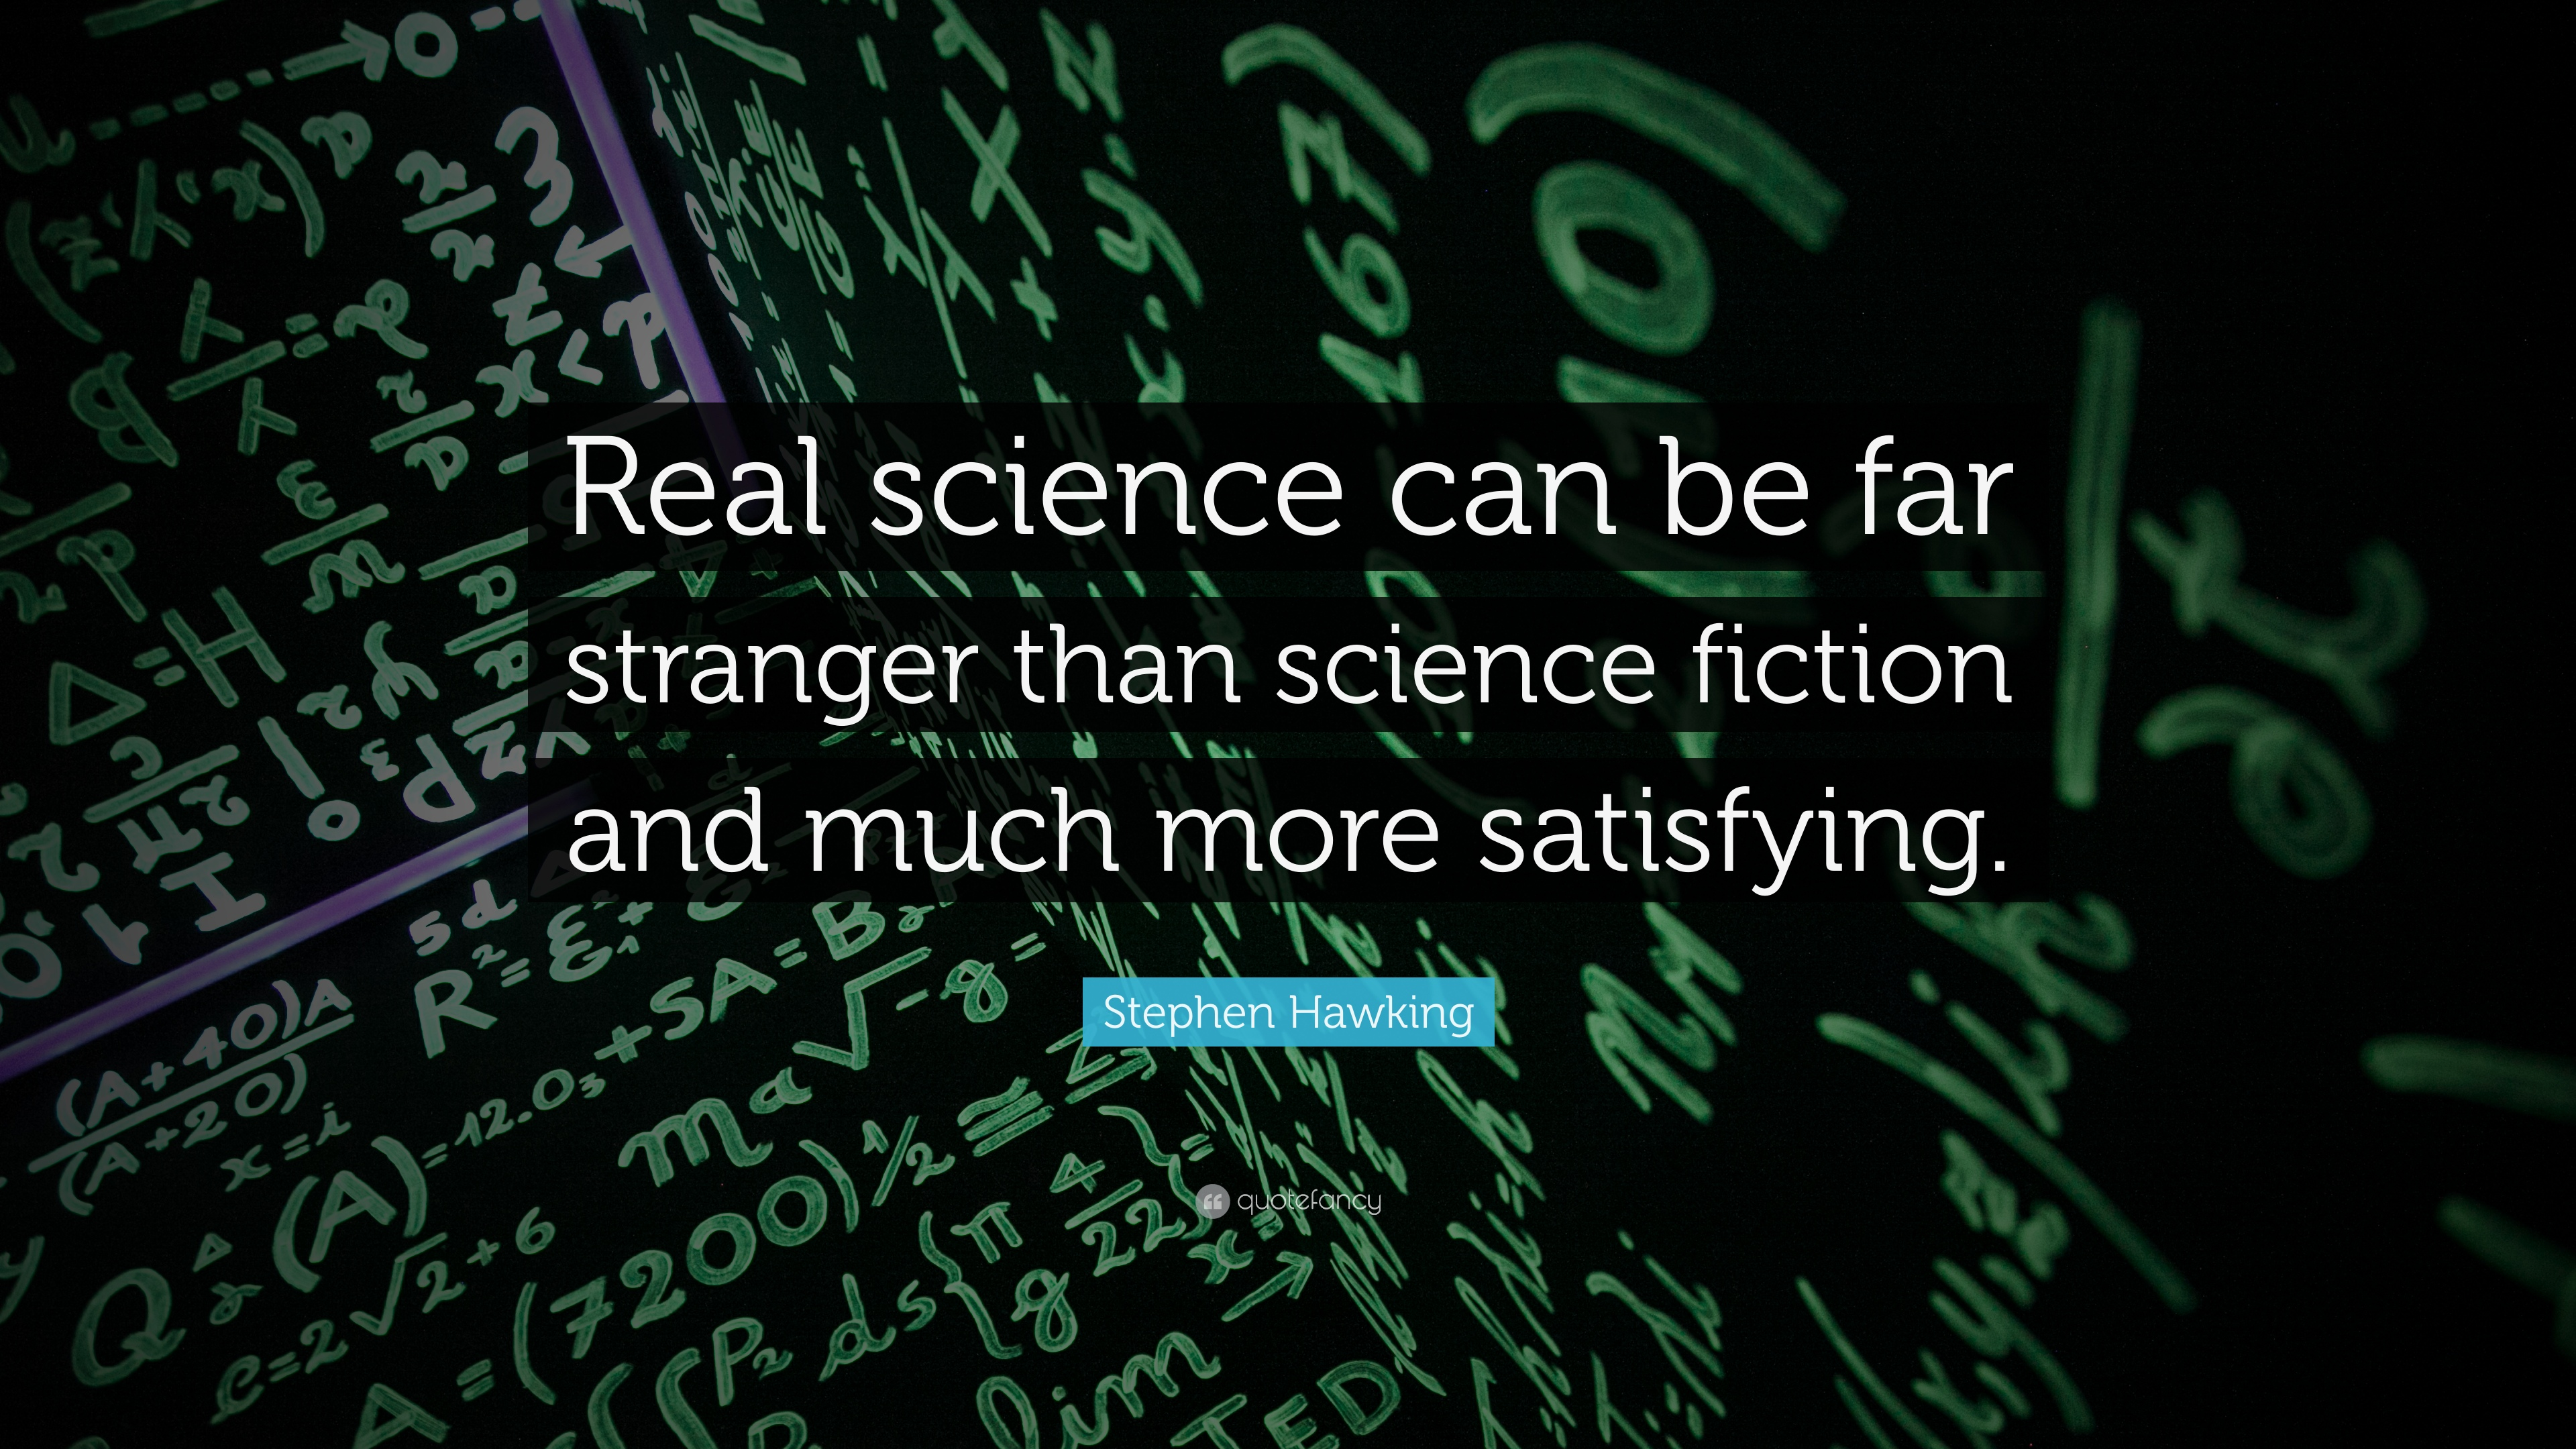 Funny Wallpaper With Quotes On Life Science Quotes 40 Wallpapers Quotefancy